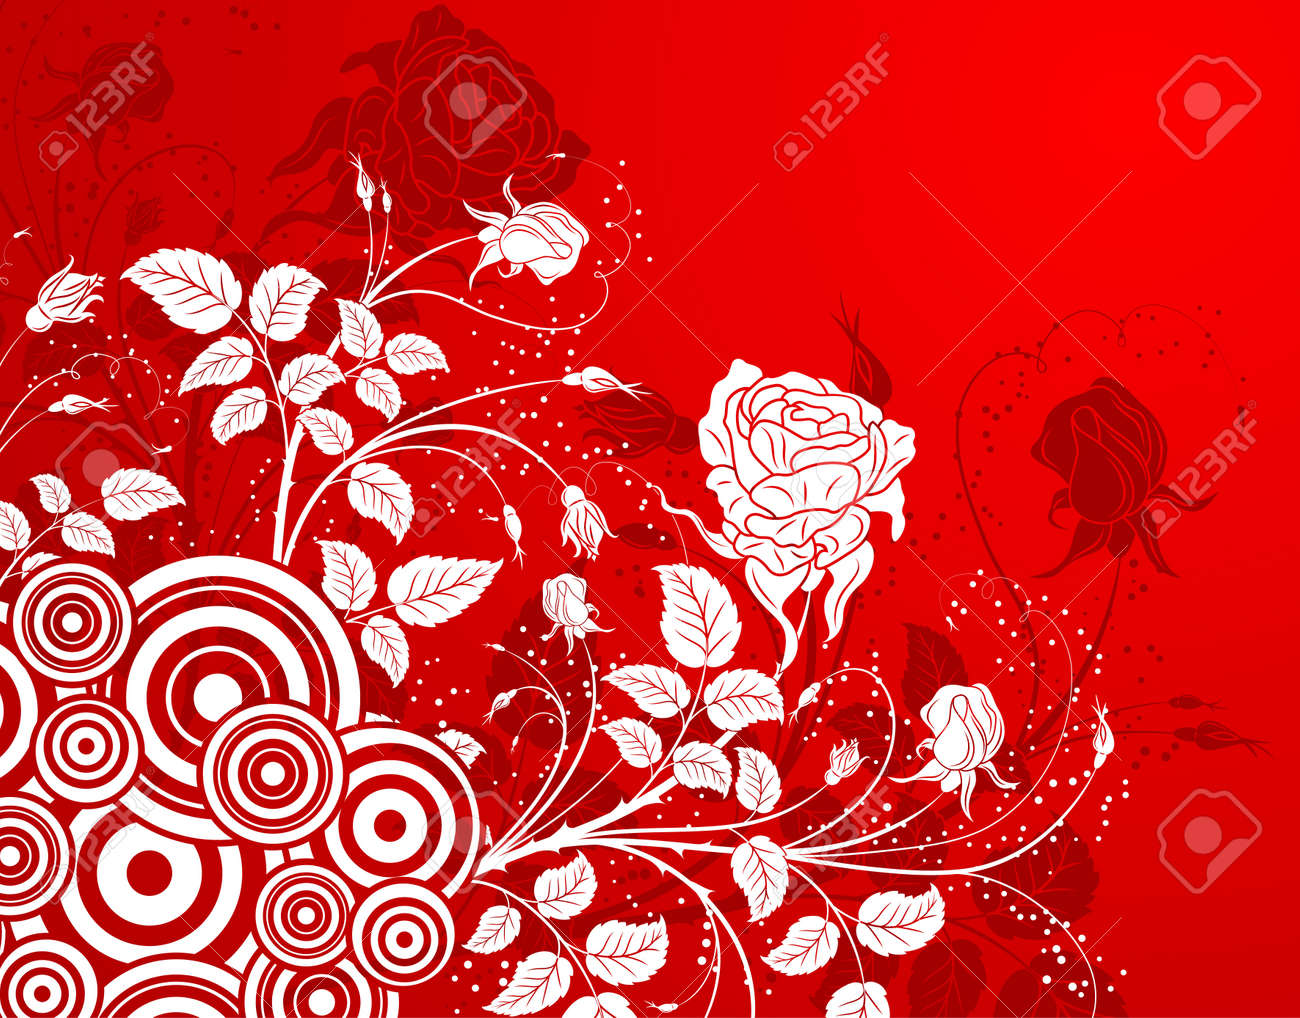 Abstract flower background with circles, element for design, vector illustration Stock Photo - 966571